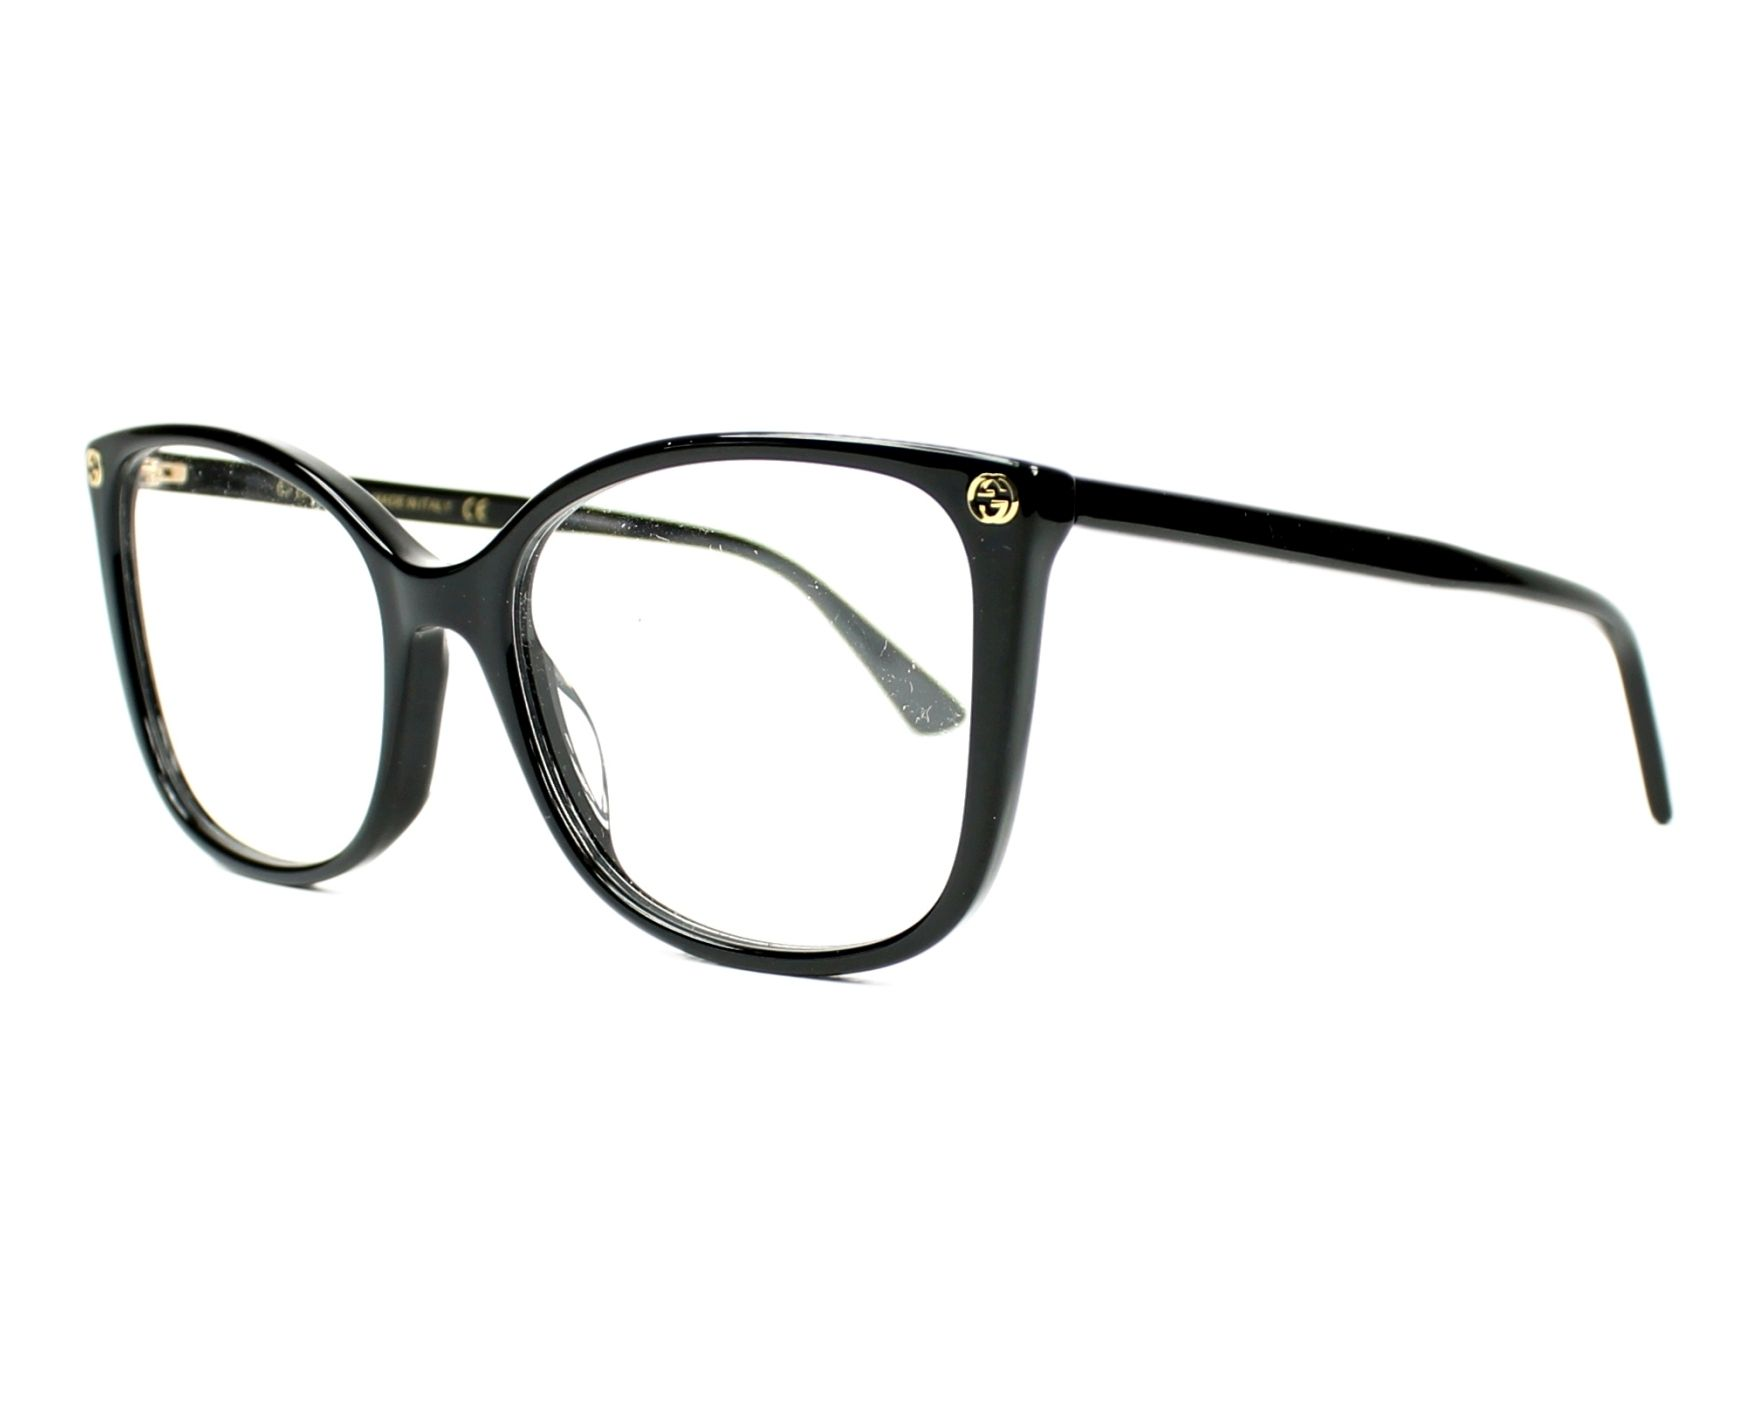 c66c01cc85f eyeglasses Gucci GG-0026-O 001 53-17 Black profile view